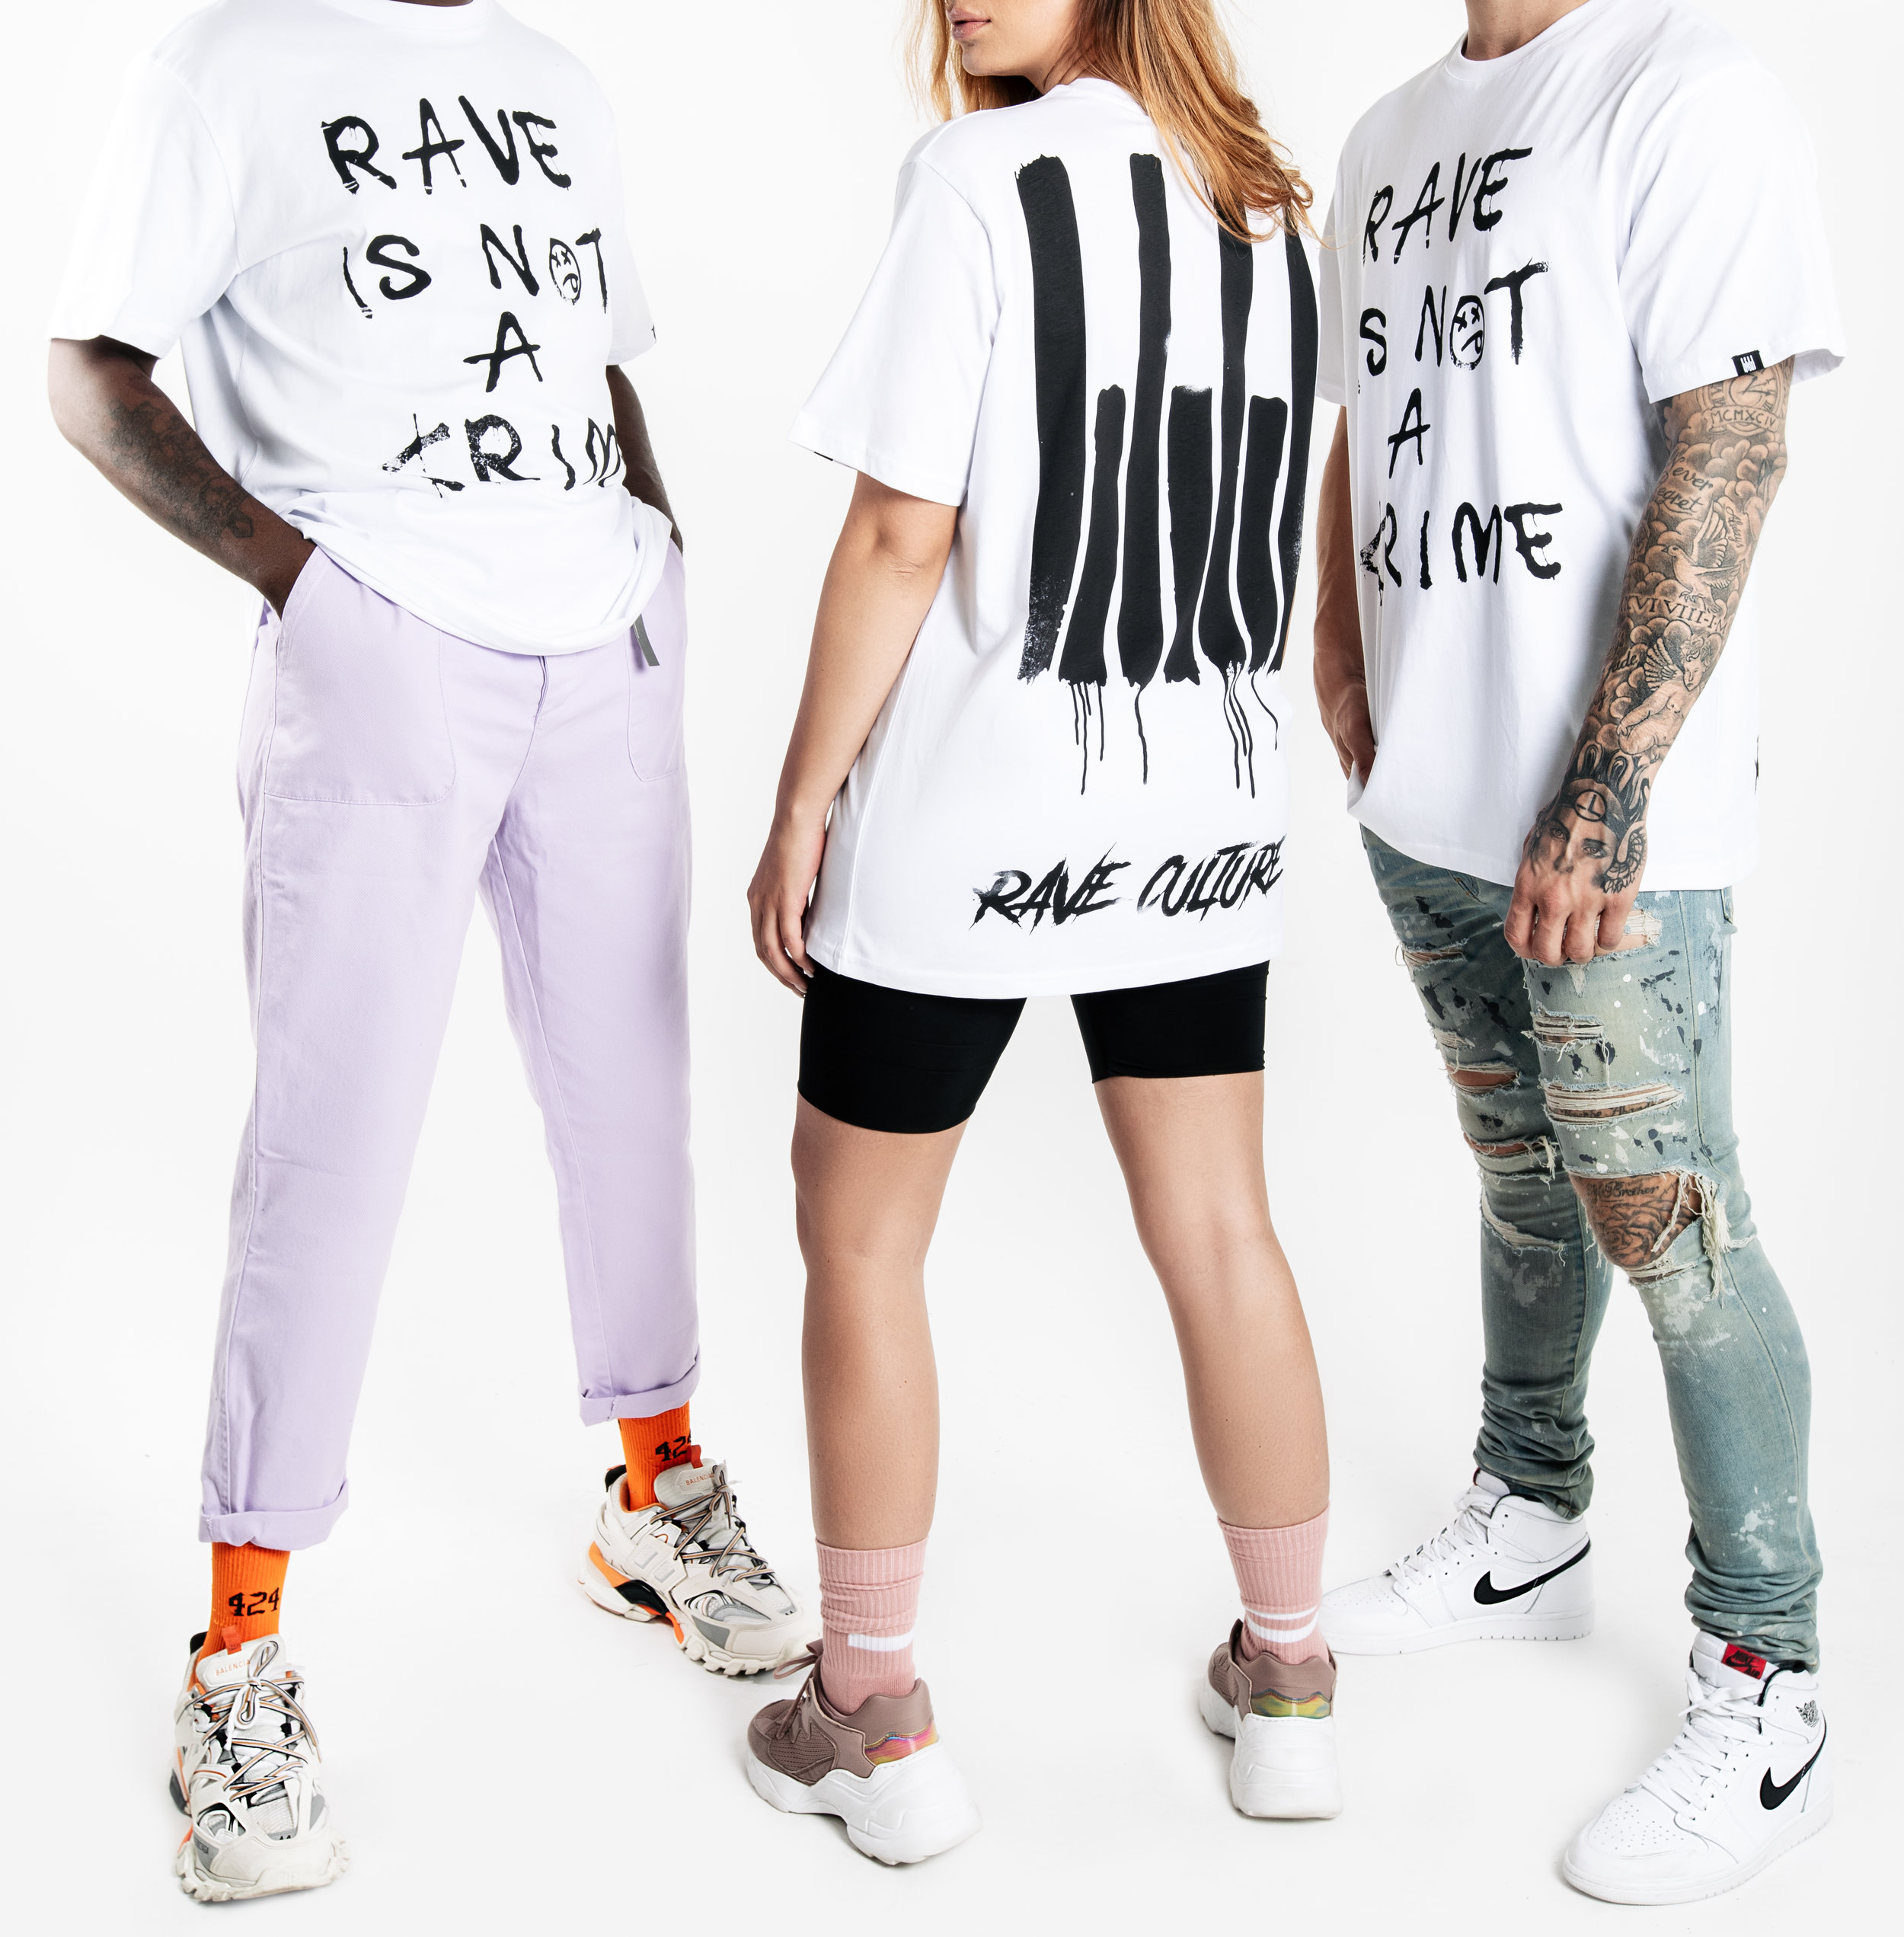 Rave Culture Rave Is Not A Crime T-Shirt Group Photo